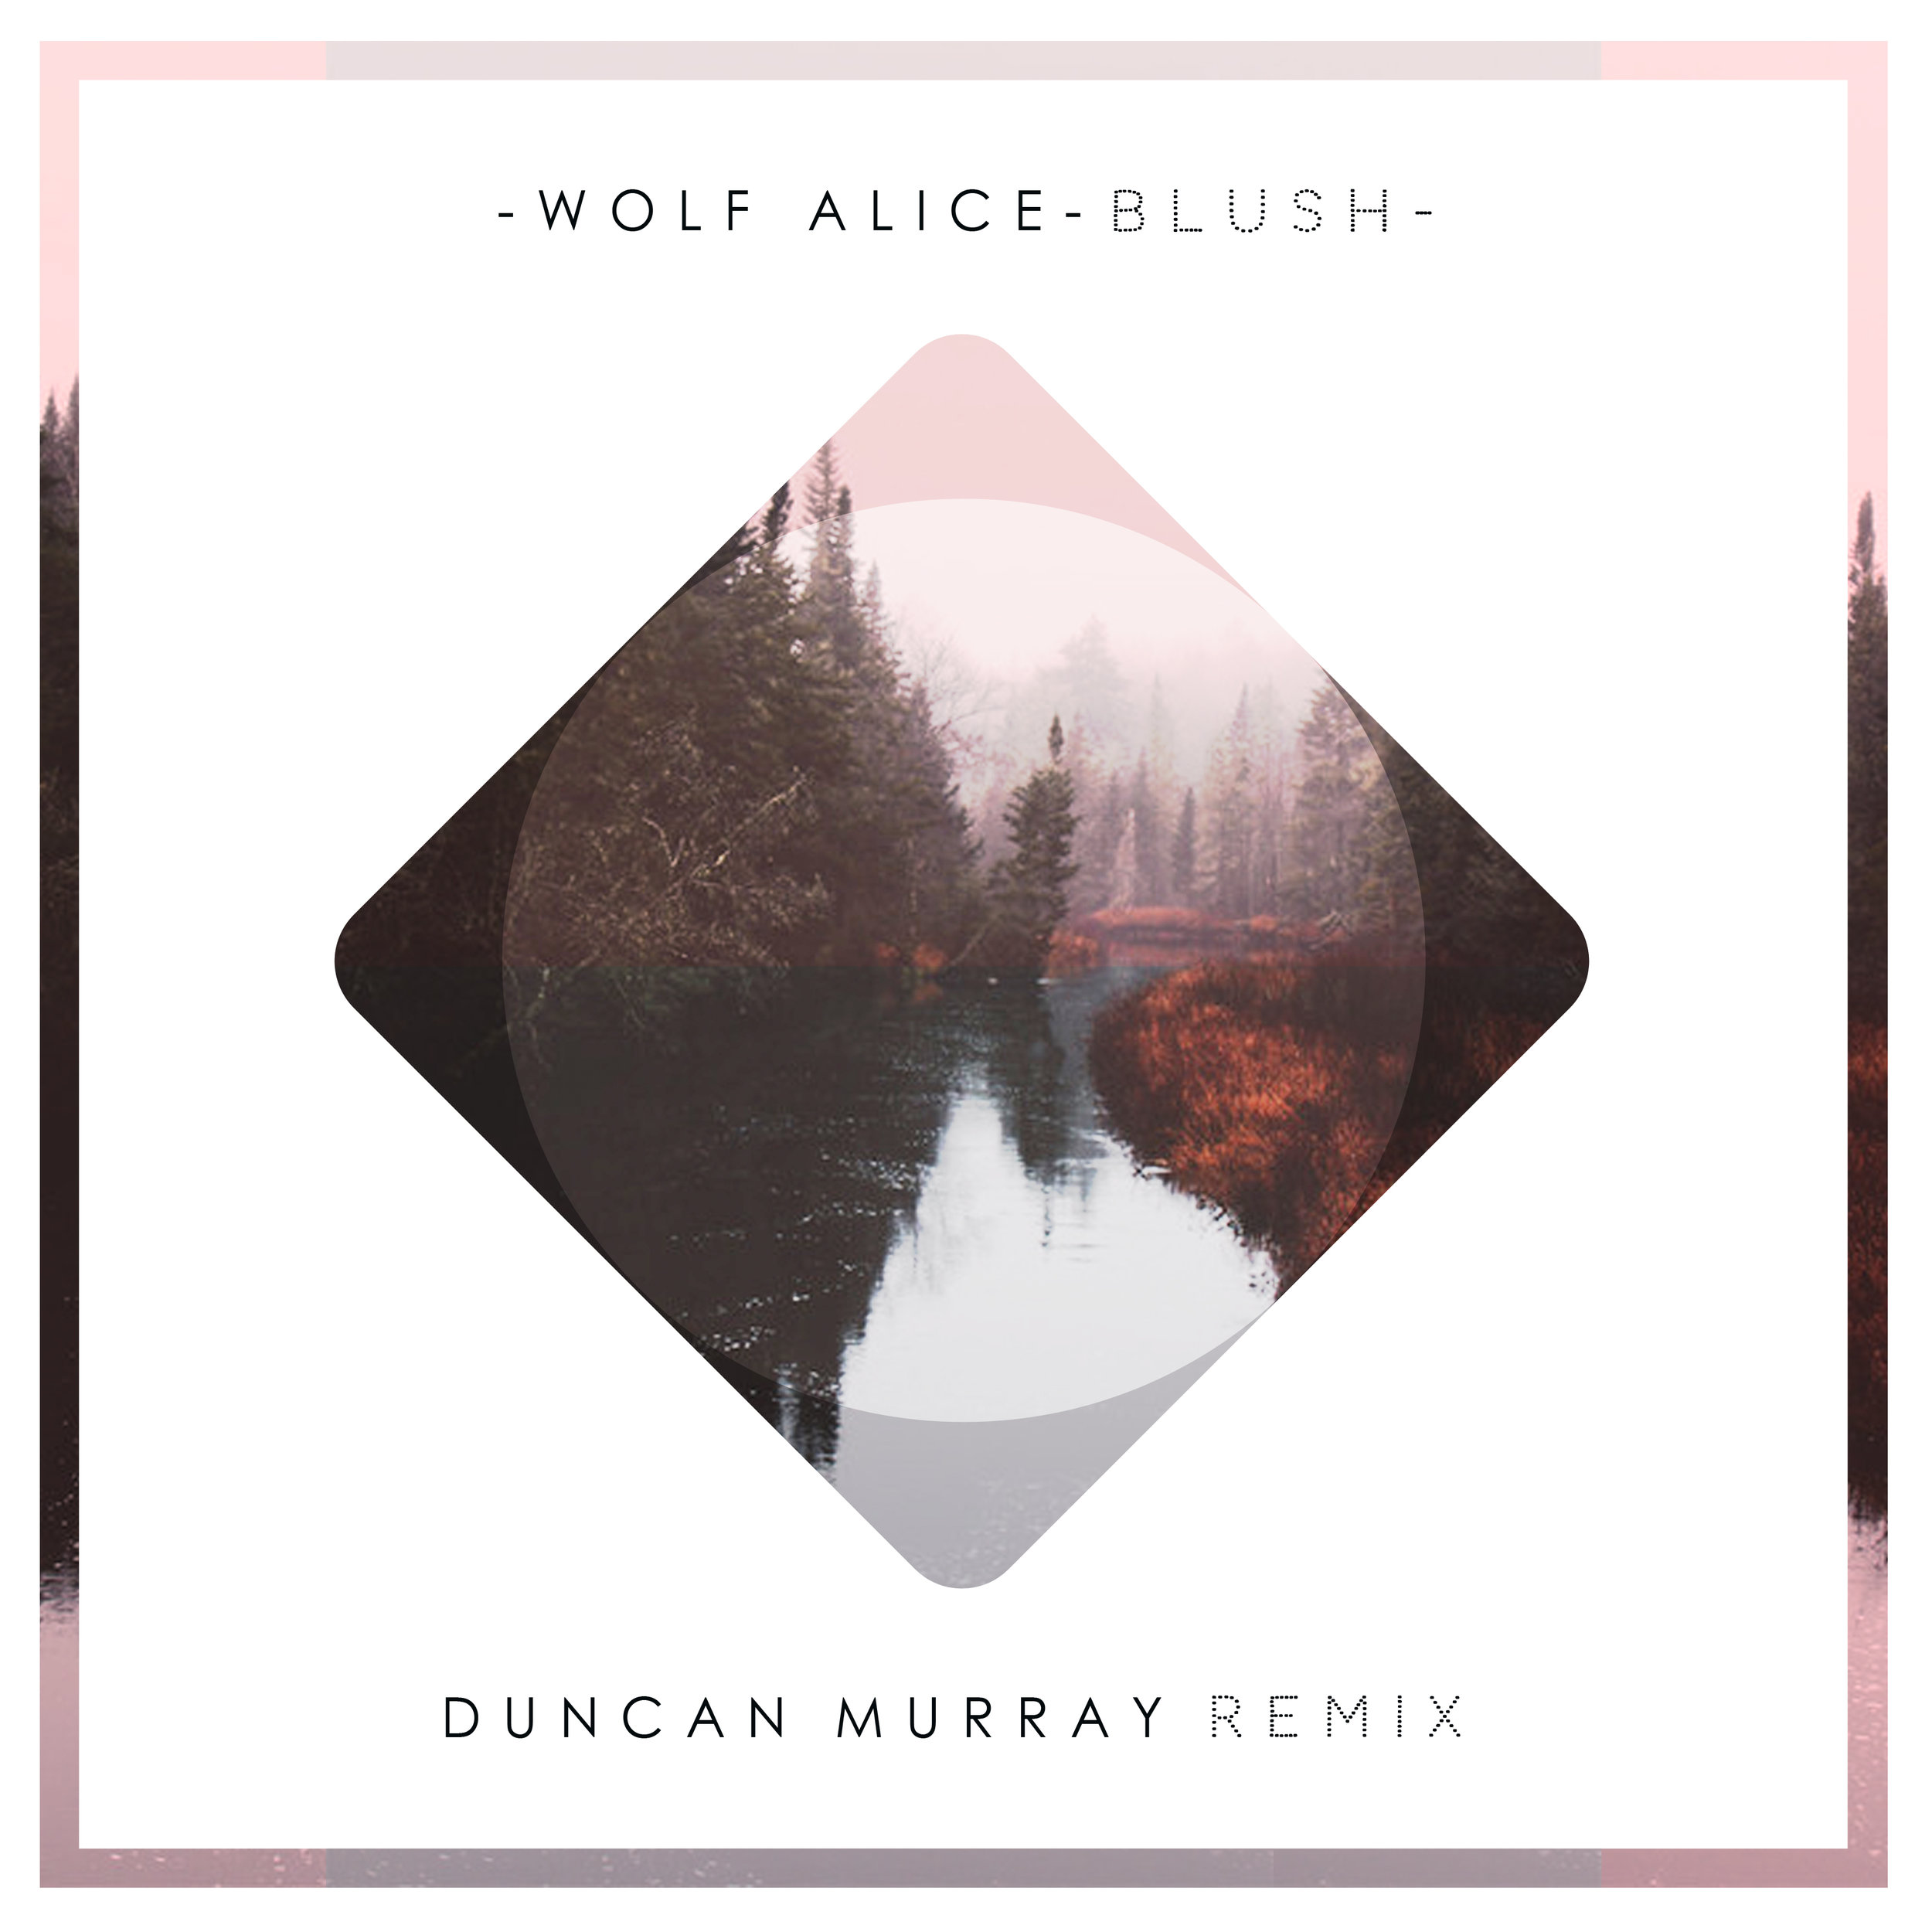 Wolf-Alice-Blush-Duncan-Murray-Remix-ARTWORK.jpeg